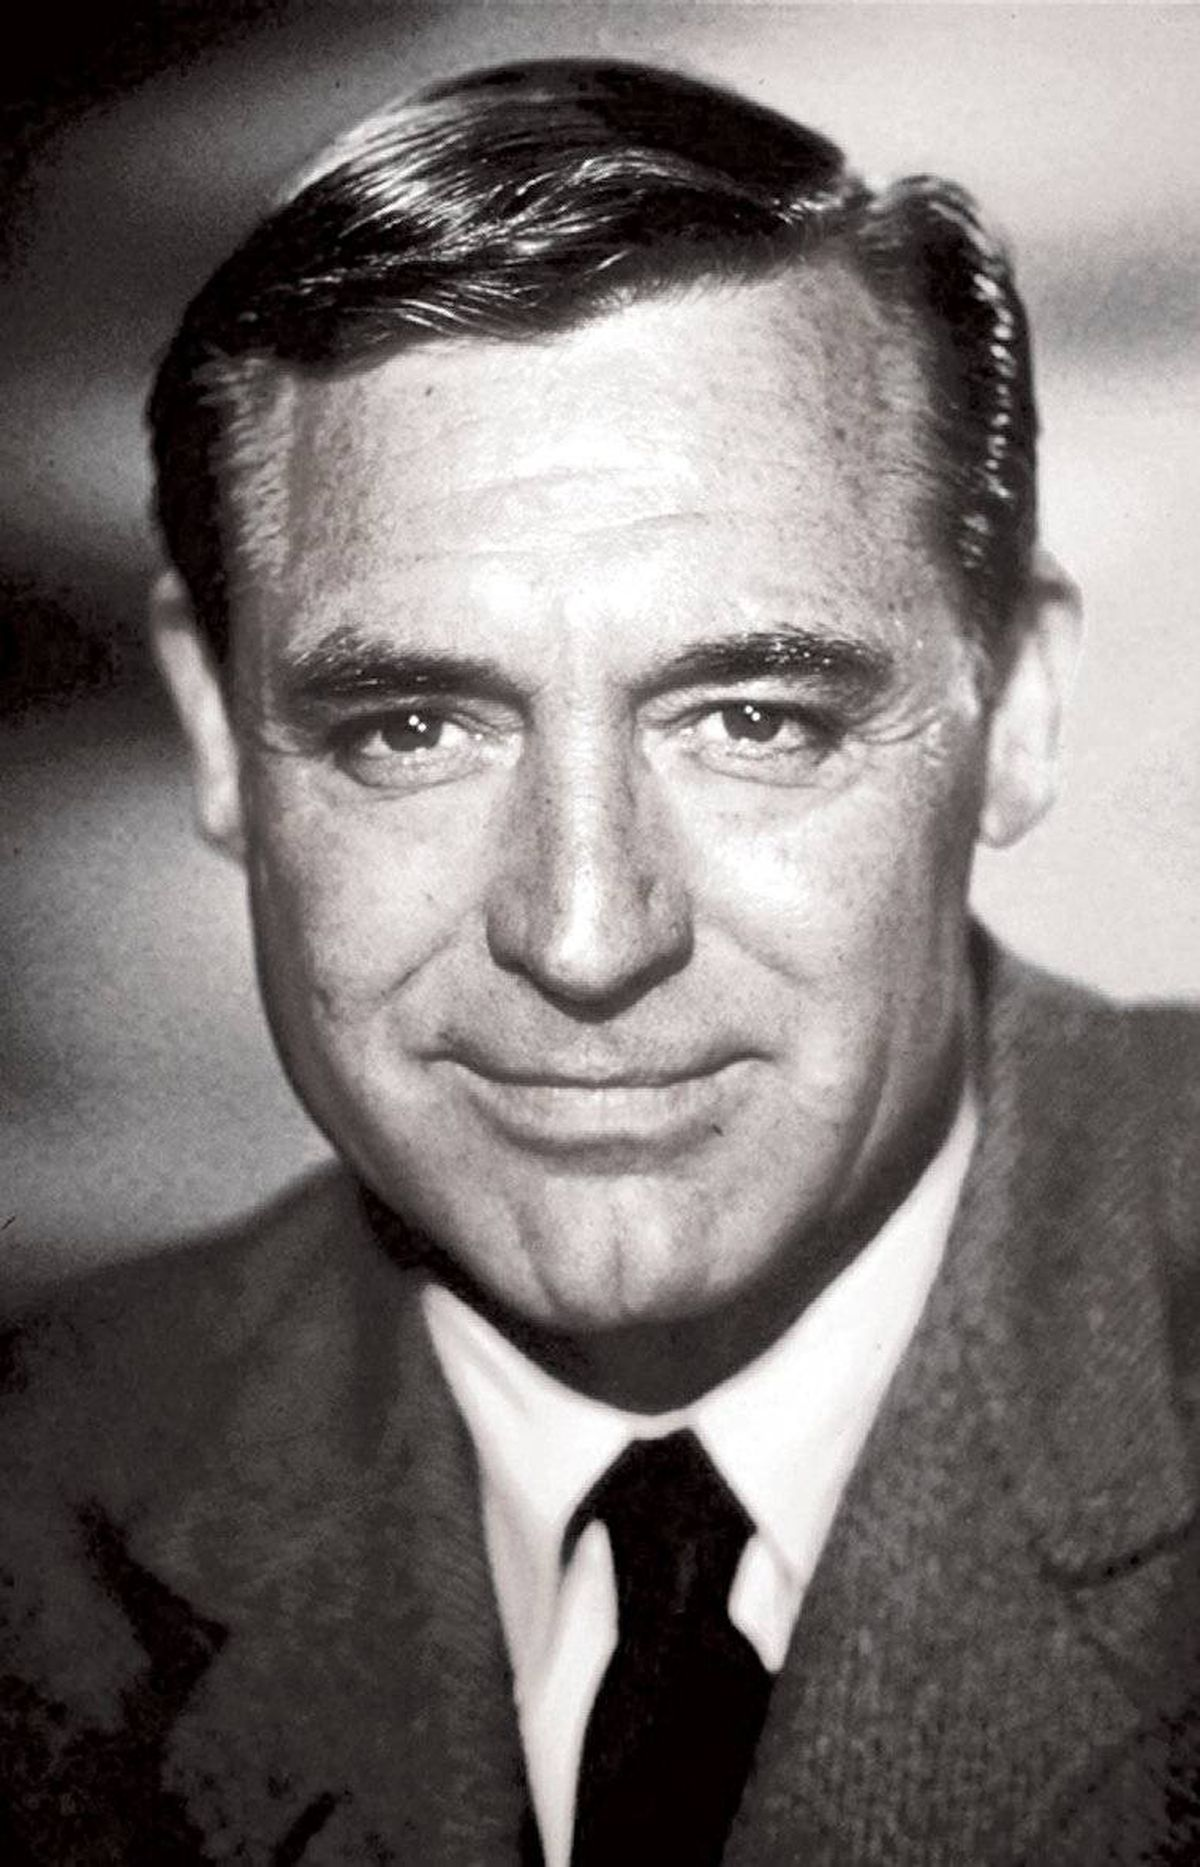 Cary Grant: Early adopter